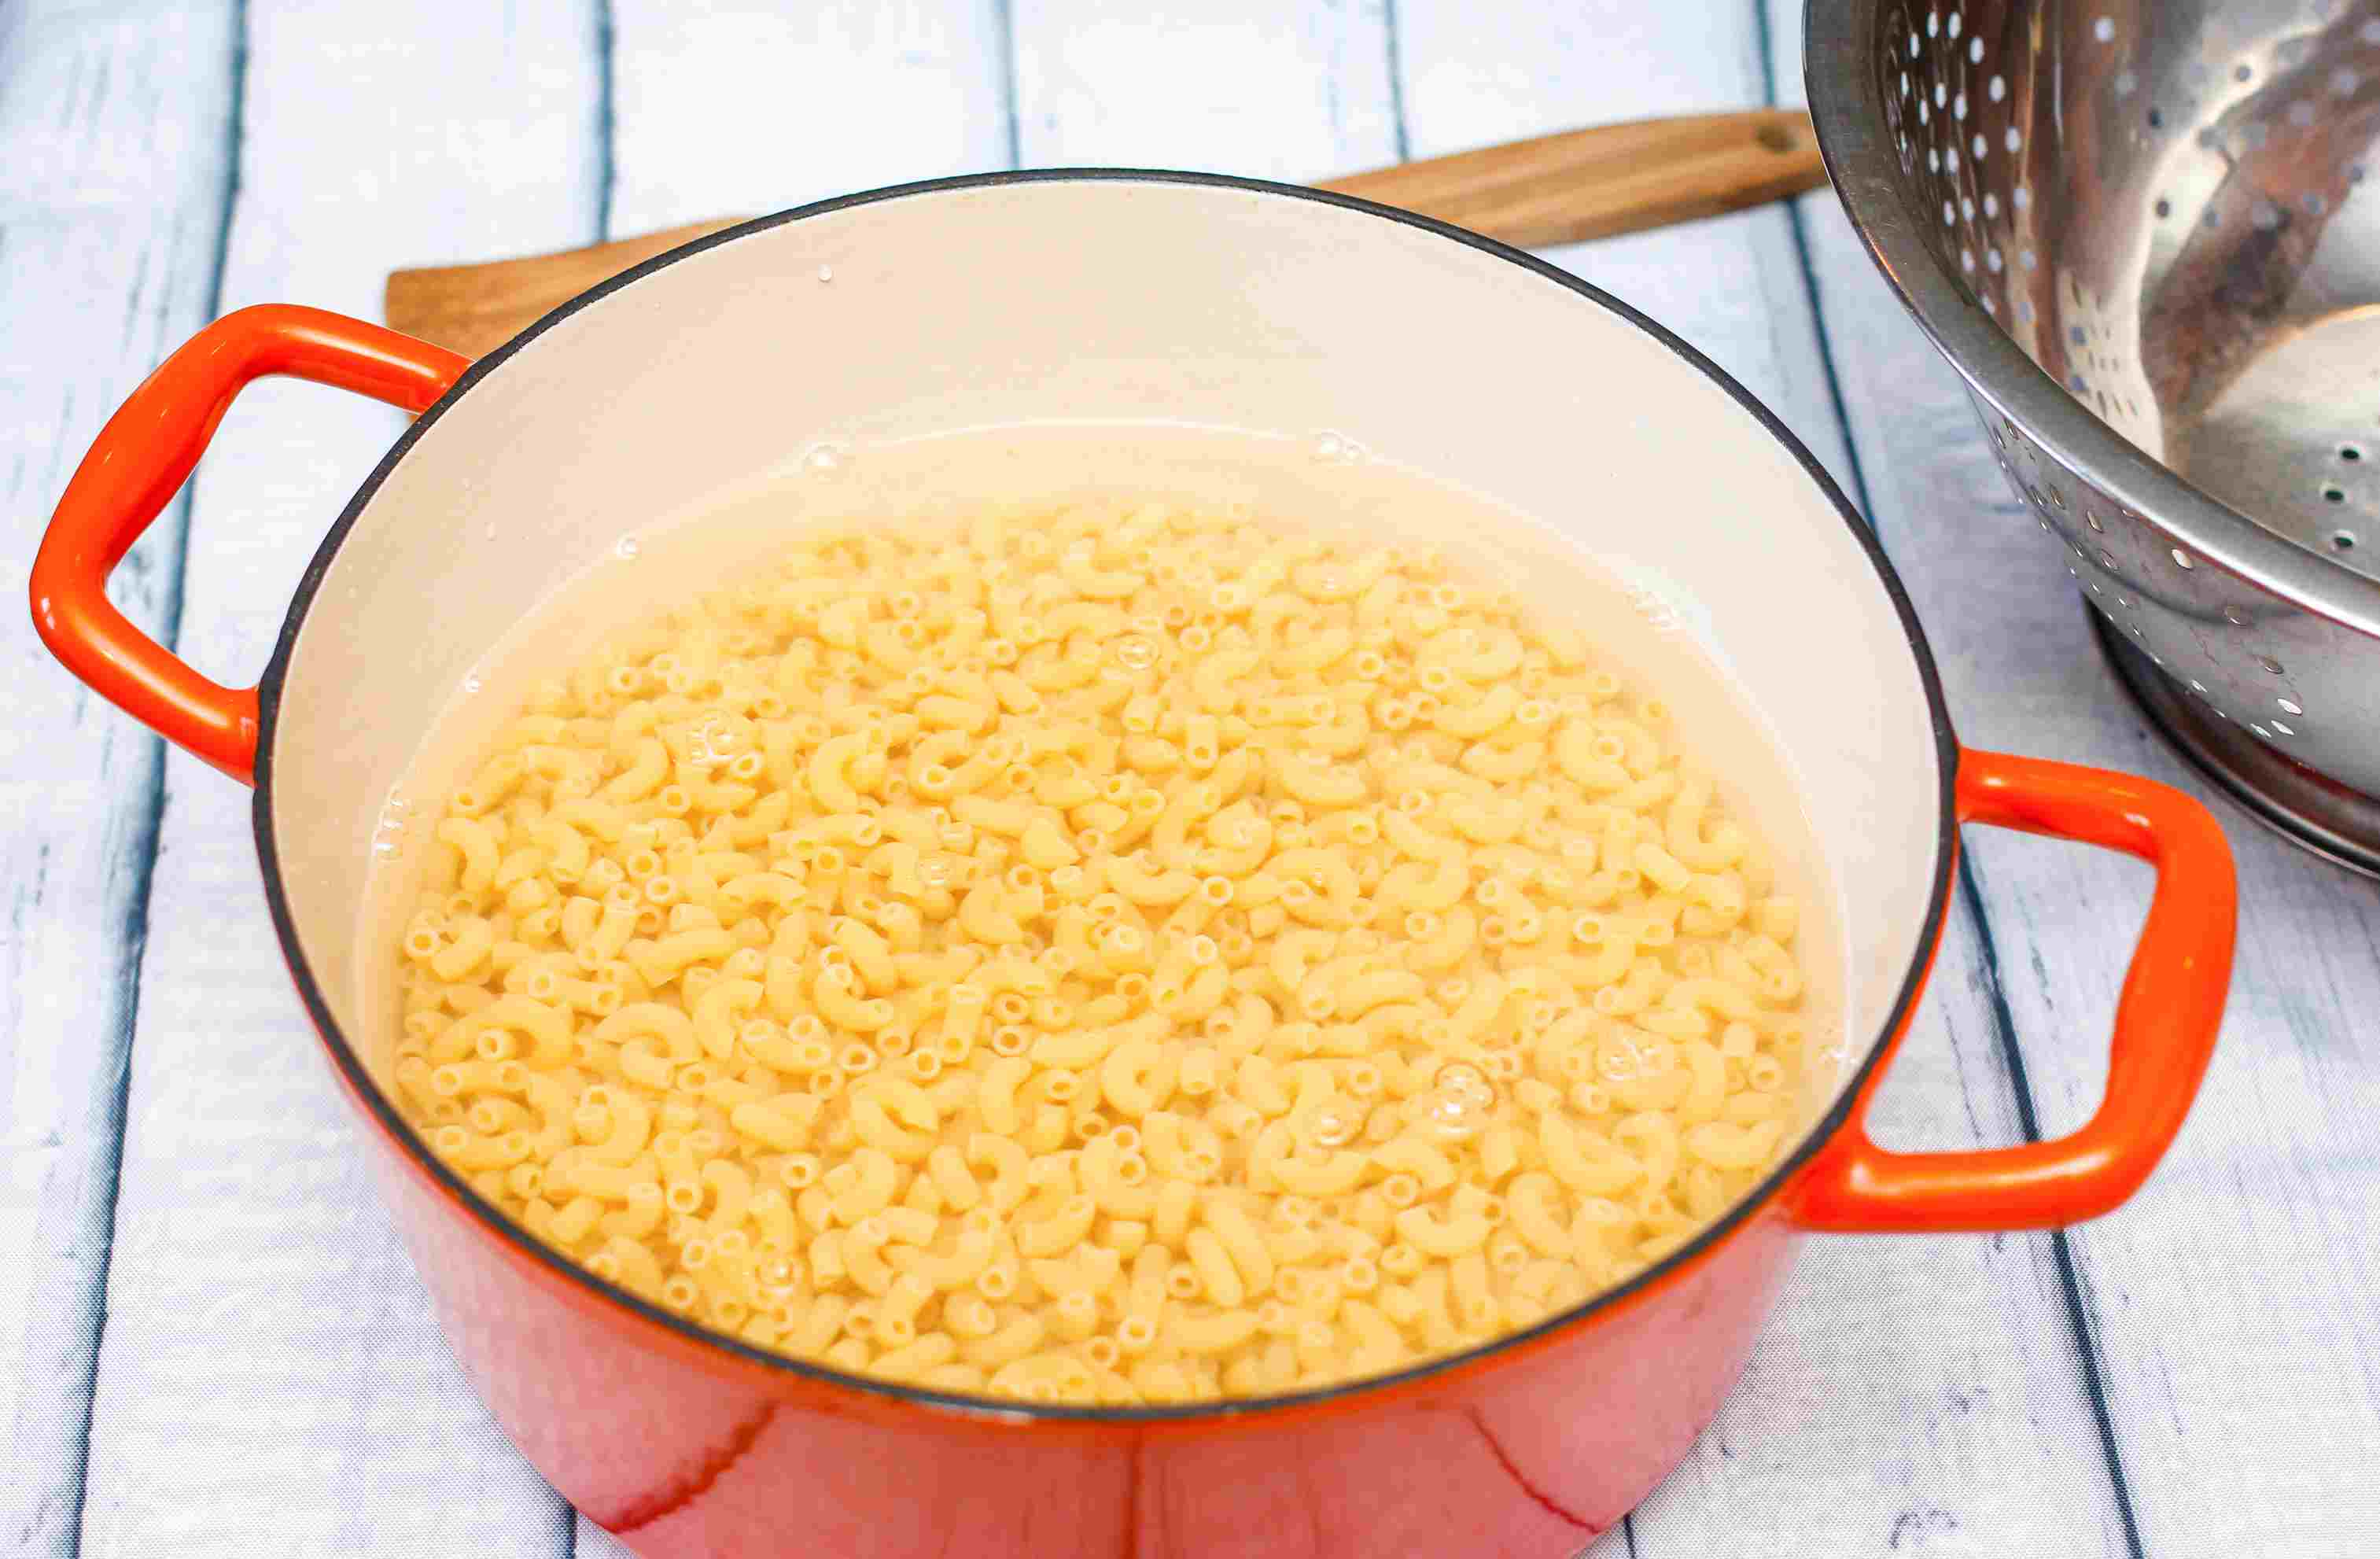 Elbow macaroni in boiling water in a large pot